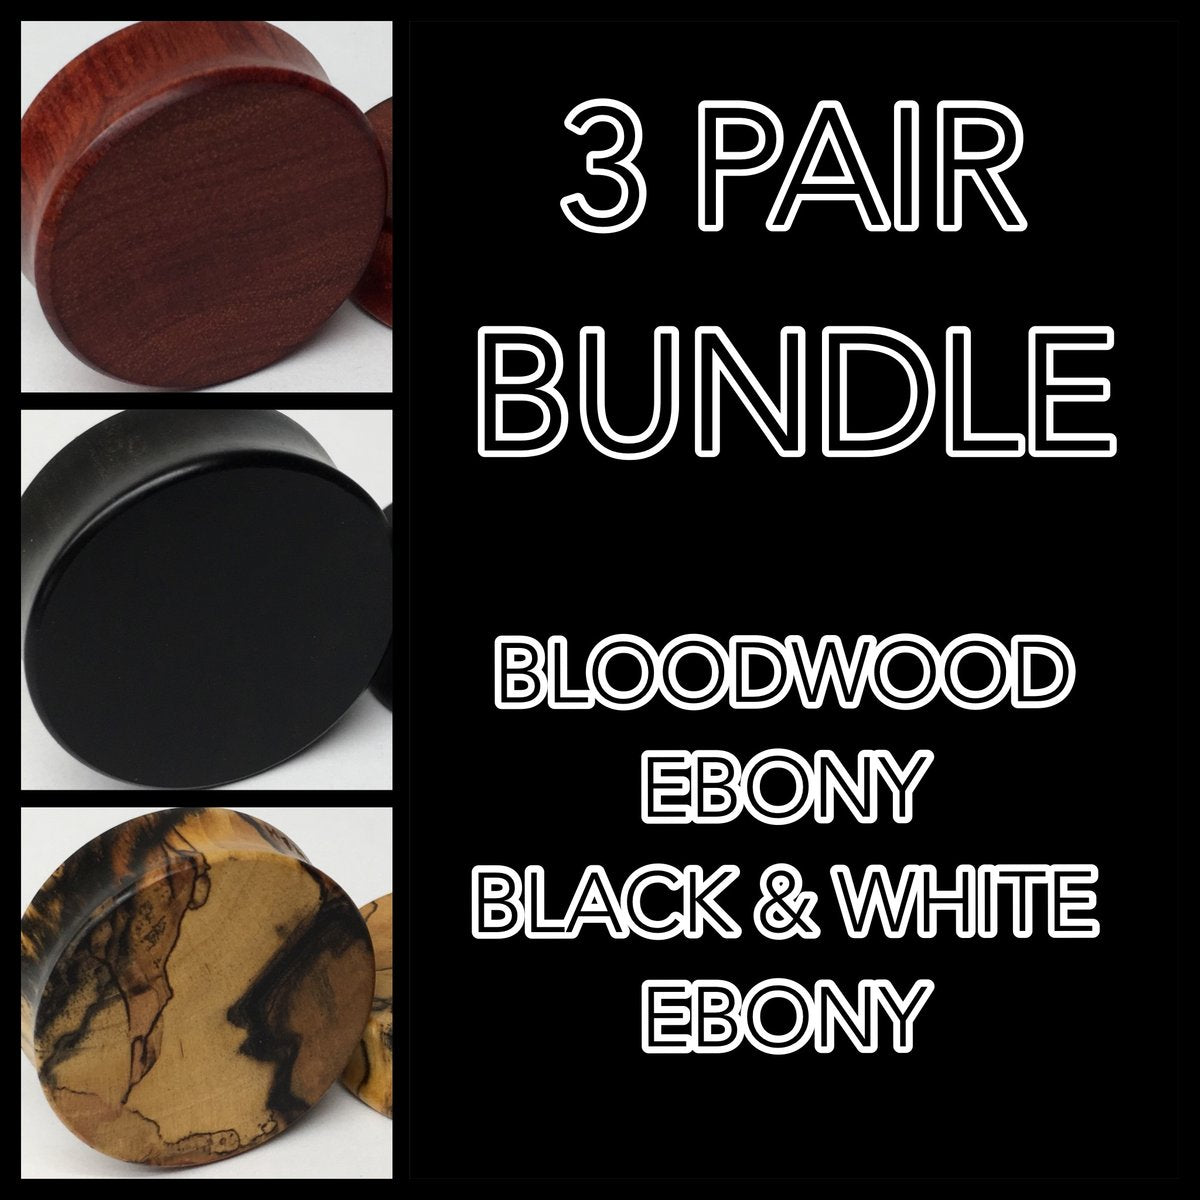 Ebony, Black & White Ebony, Bloodwood Bundle